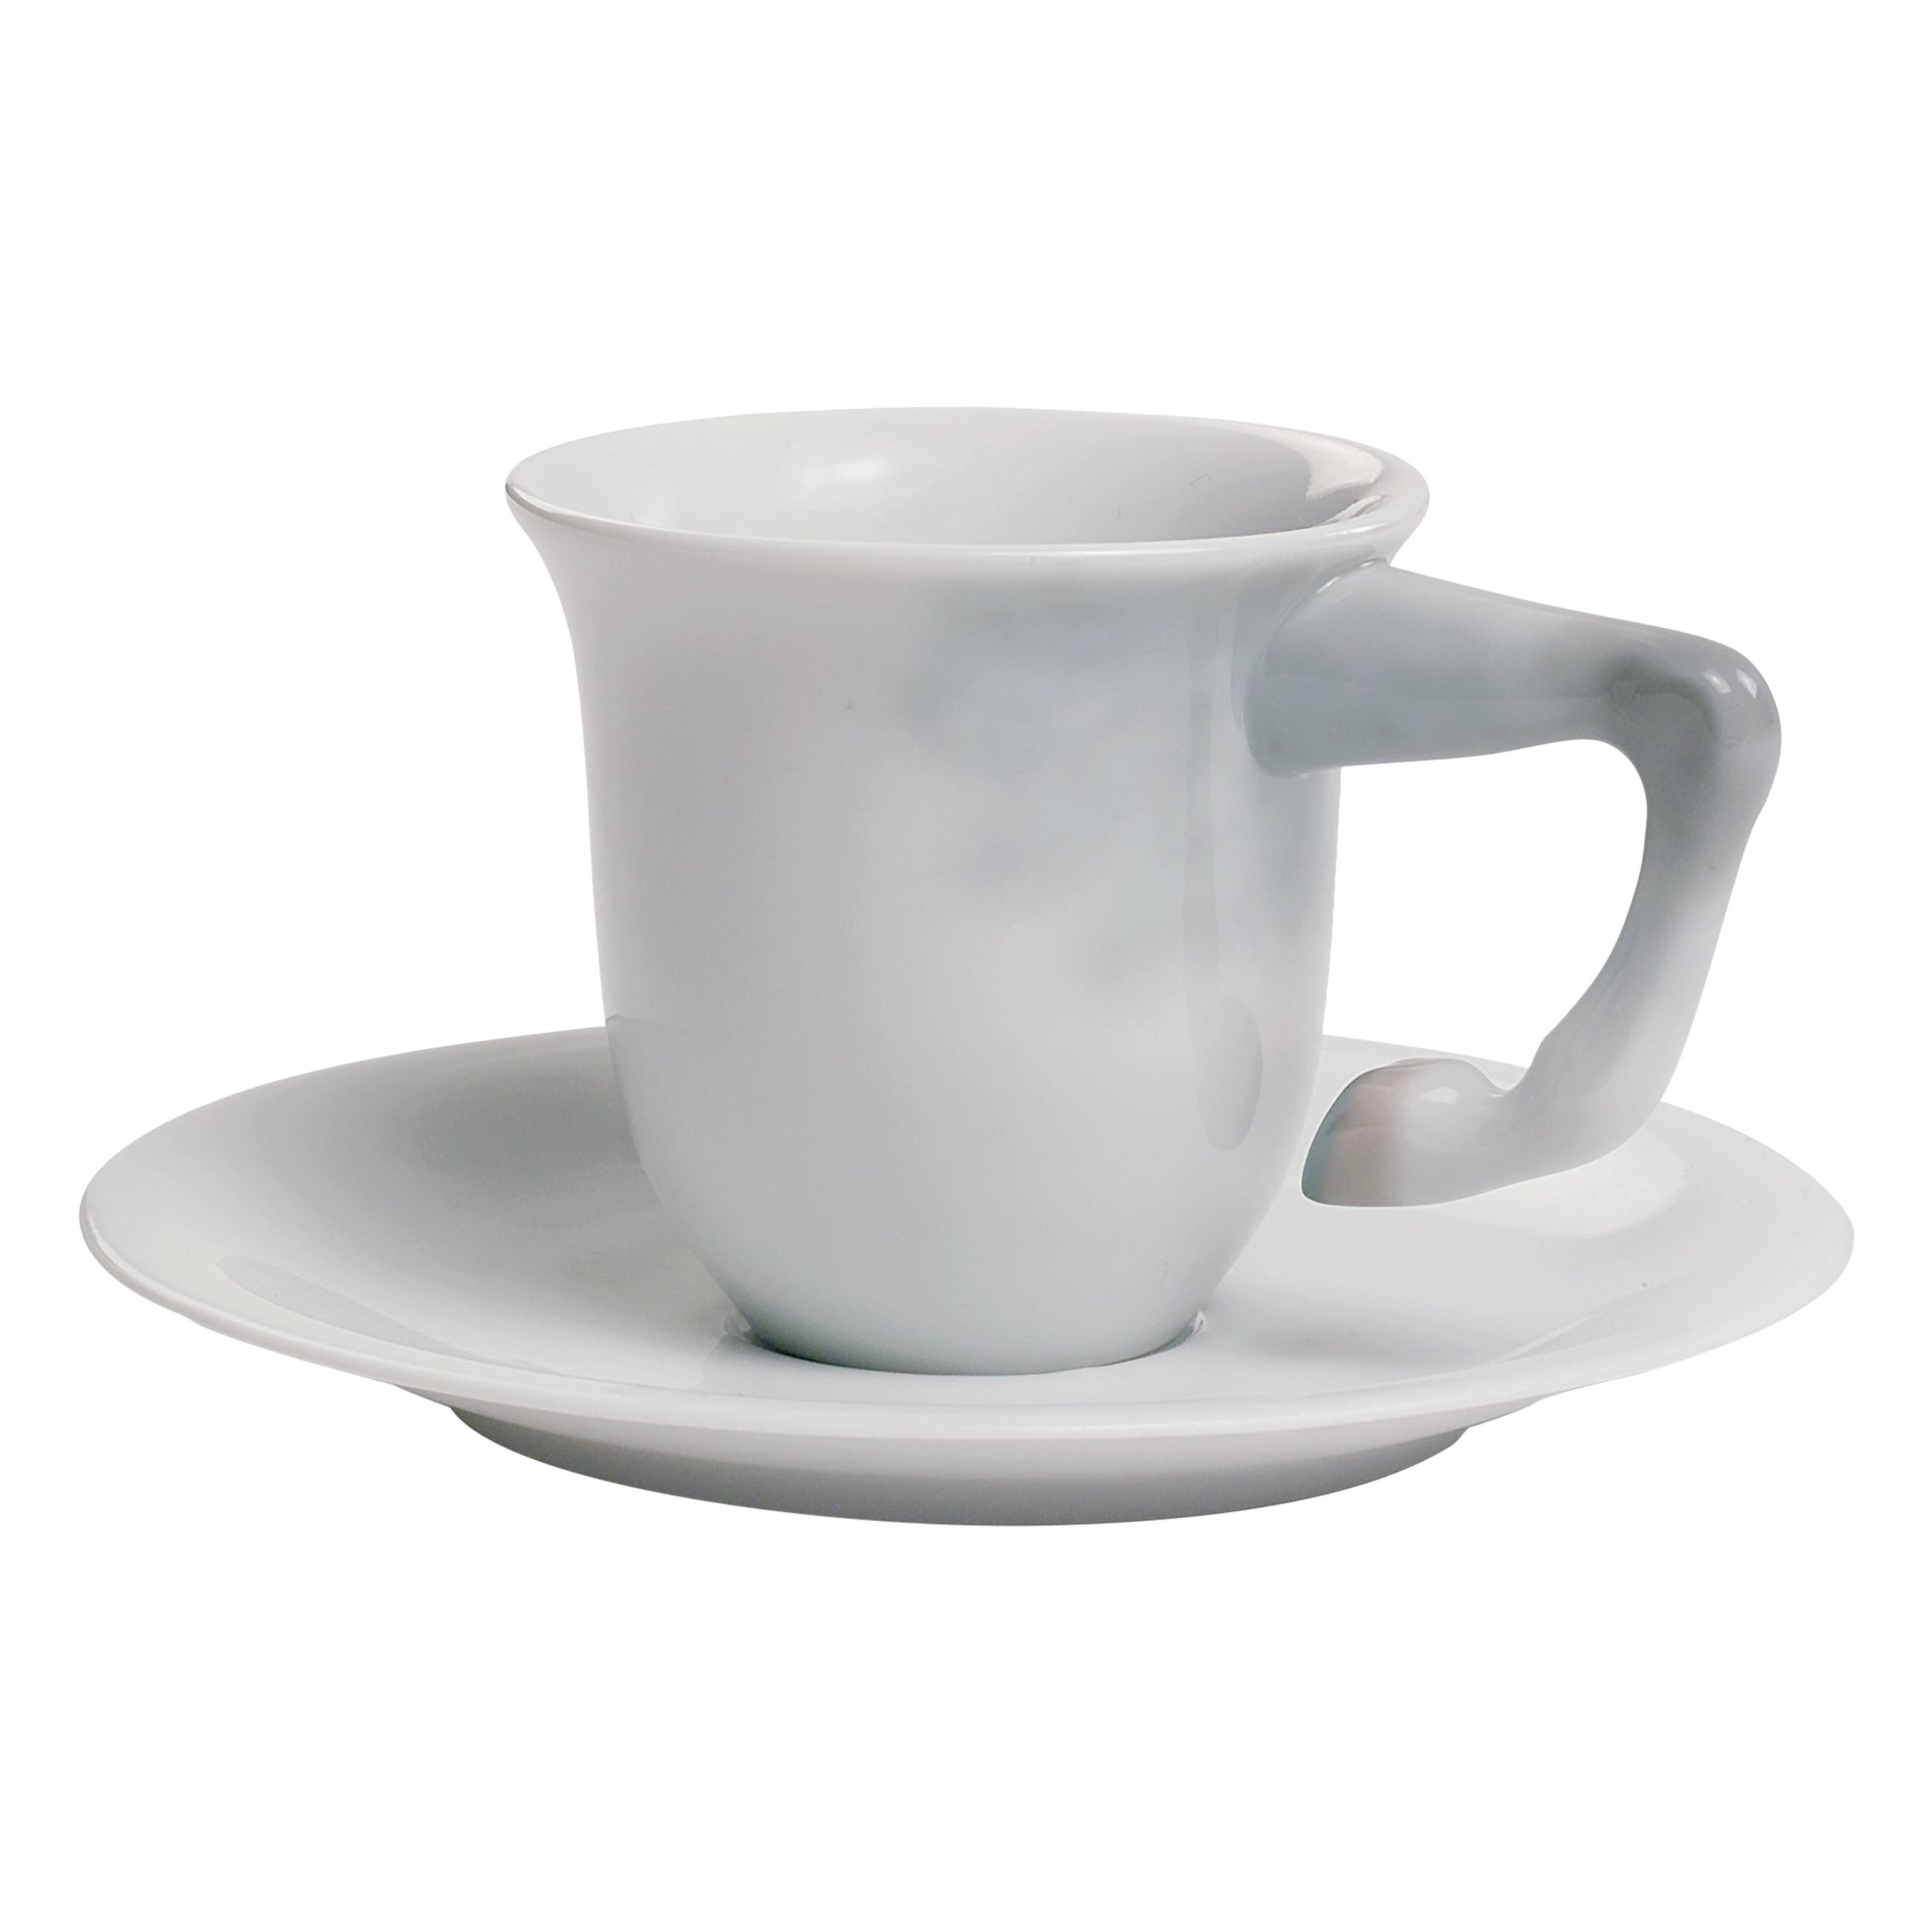 Lladro Equus Coffee Cup with Saucer by Bodo Sperlein